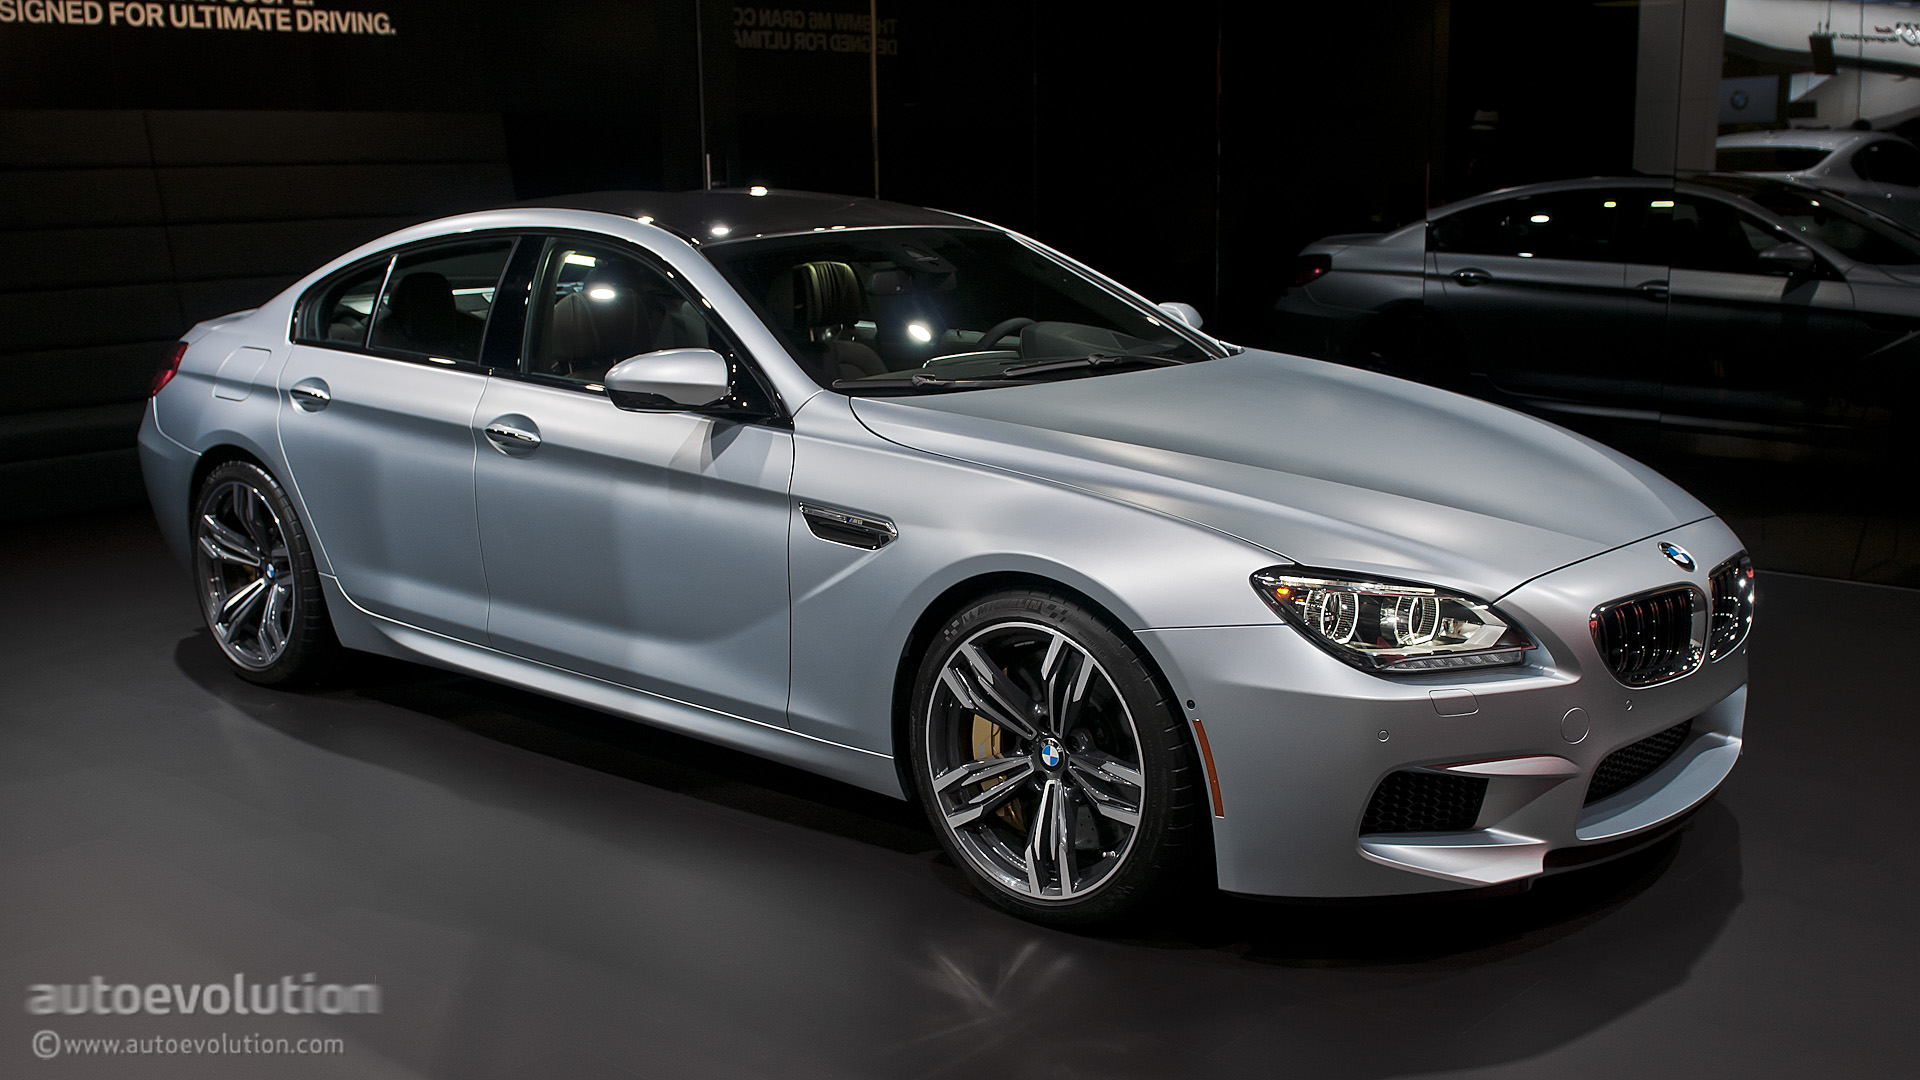 BMW M6 Gran Coupe #1